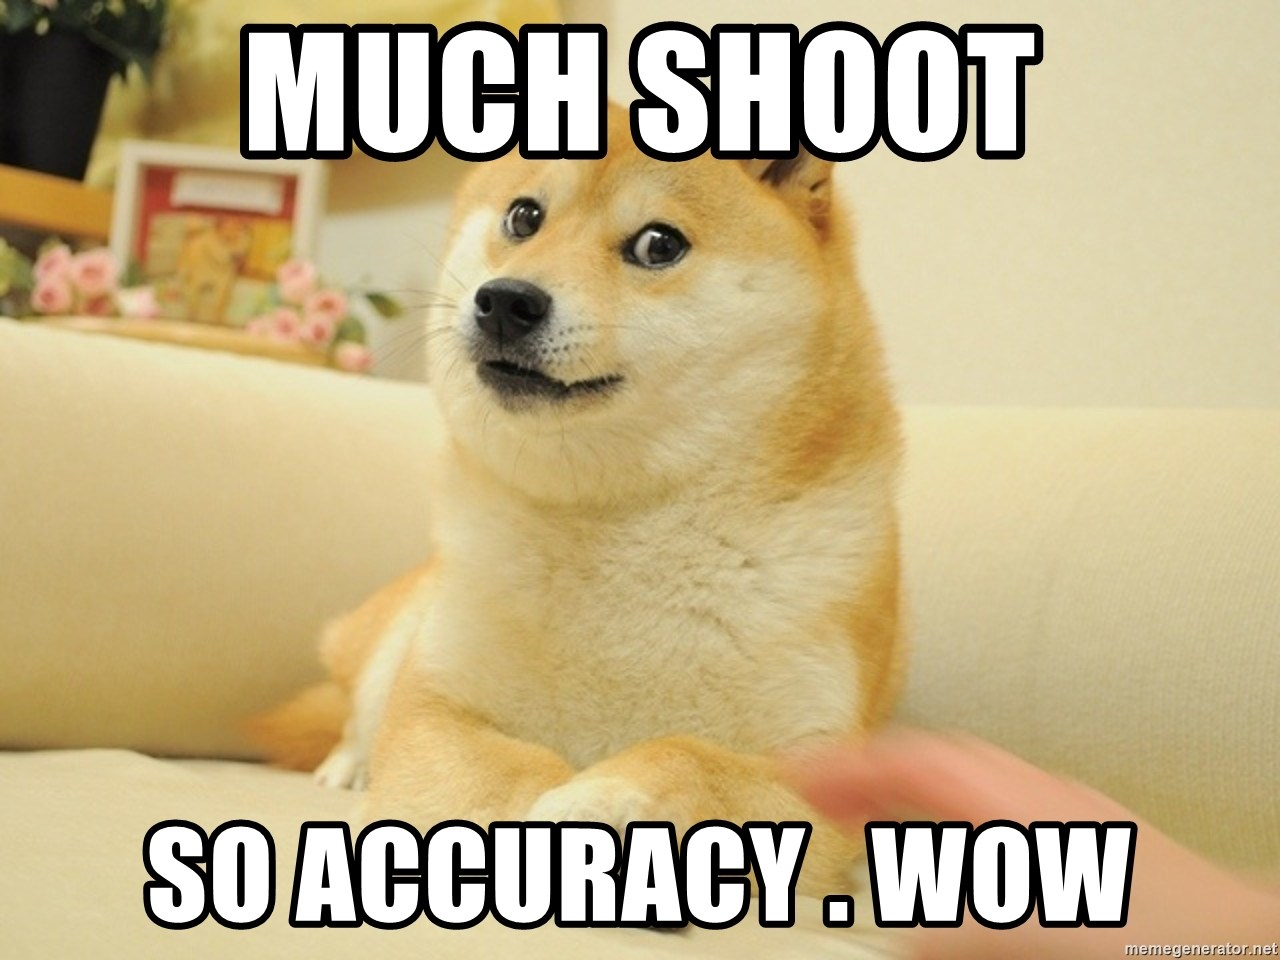 so doge - Much Shoot So Accuracy . WOW